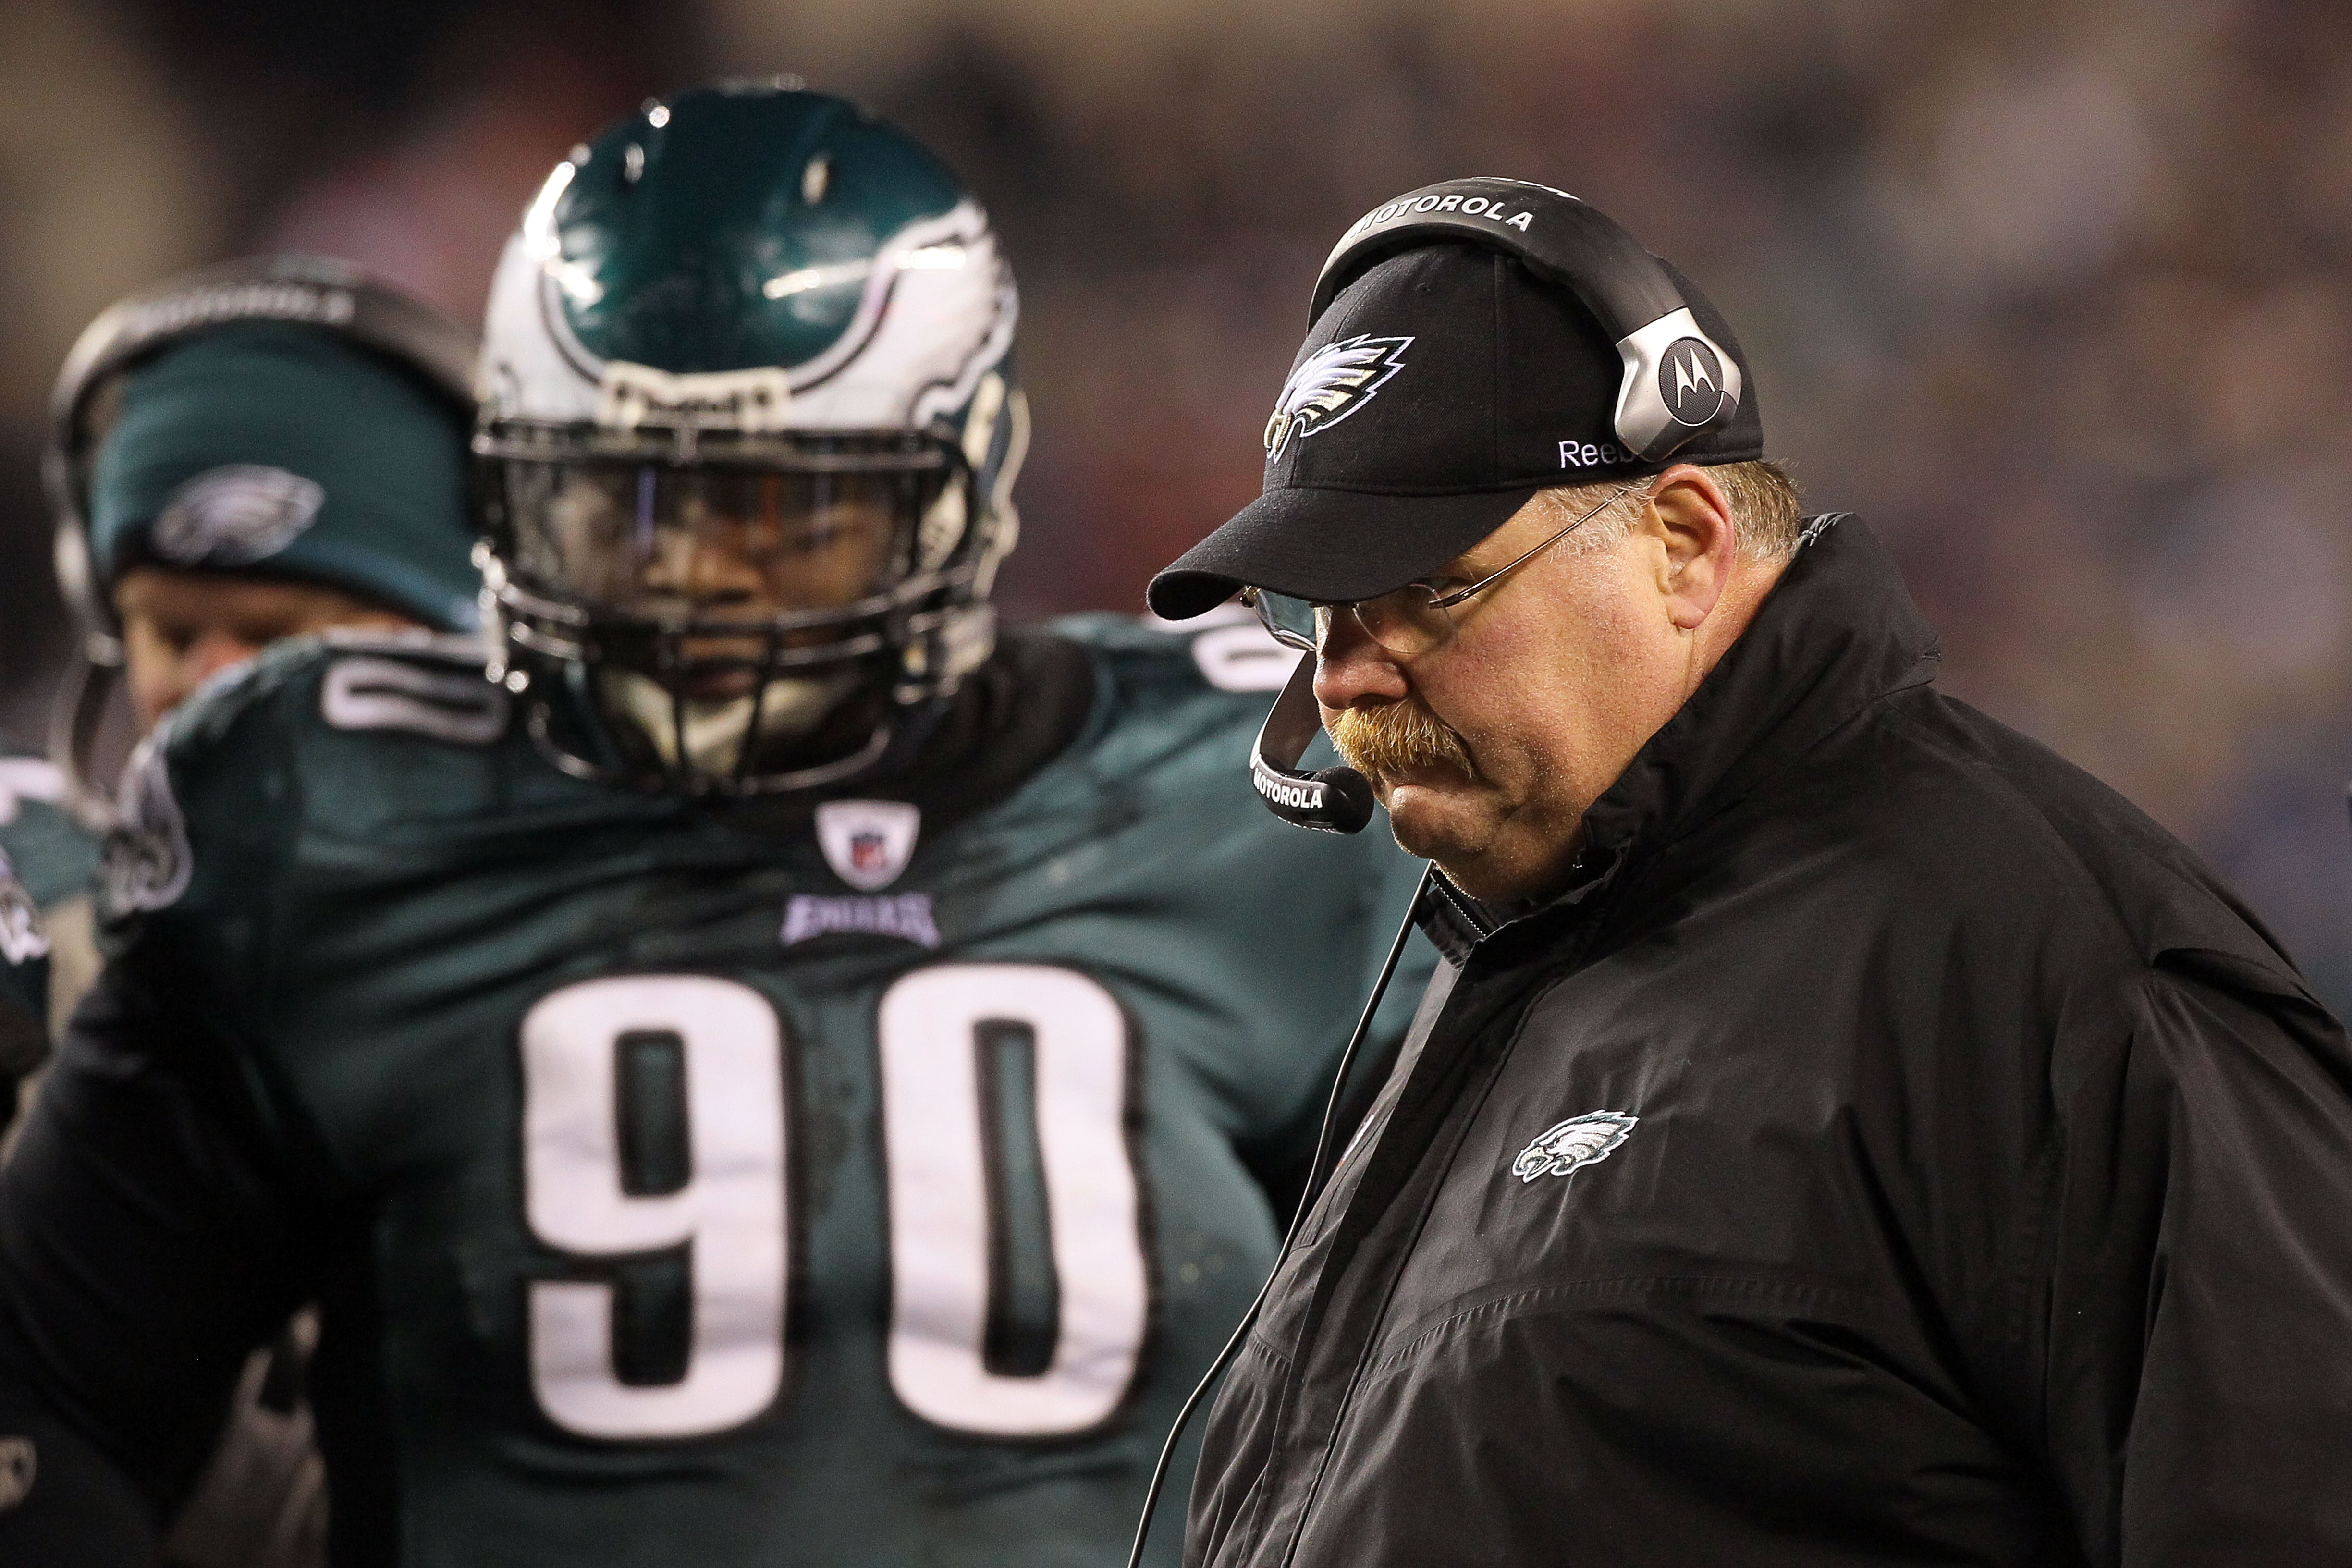 PHILADELPHIA, PA - DECEMBER 26:  Head Coach Andy Reid (R) of the Philadelphia Eagles stands on the sidelines with Antonio Dixon #90 during their game against the Minnesota Vikings at Lincoln Financial Field on December 26, 2010 in Philadelphia, Pennsylvan